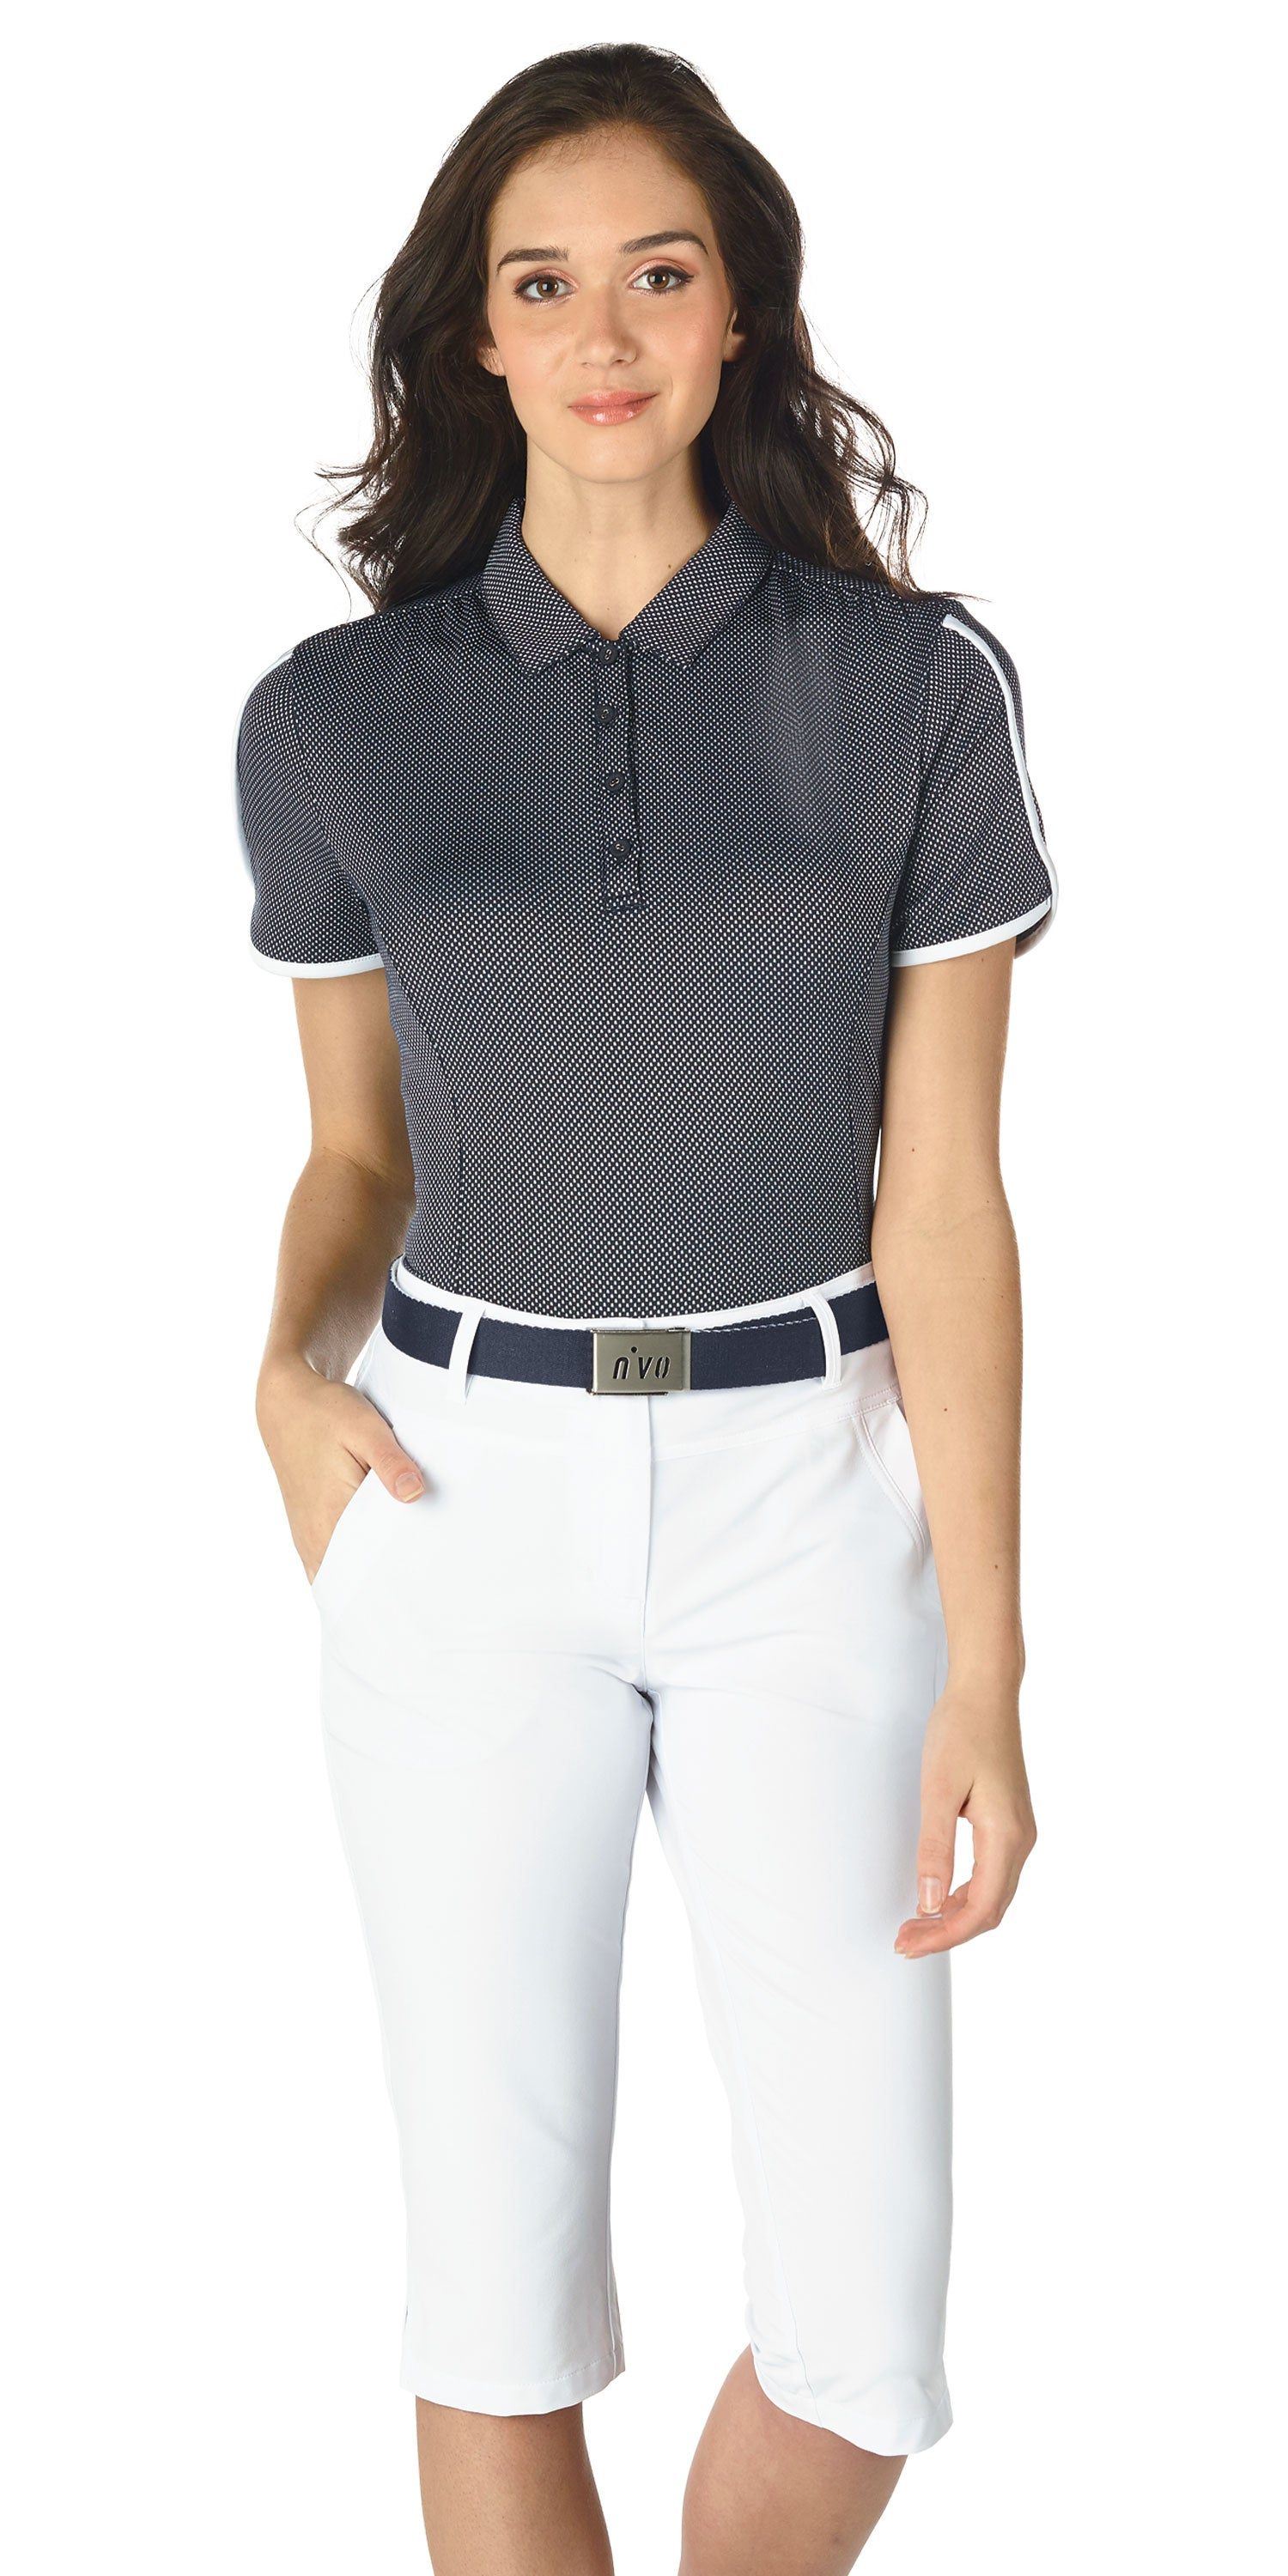 AMERICANA - ALLIE POLO - MANDY SHORT - IMA BELT